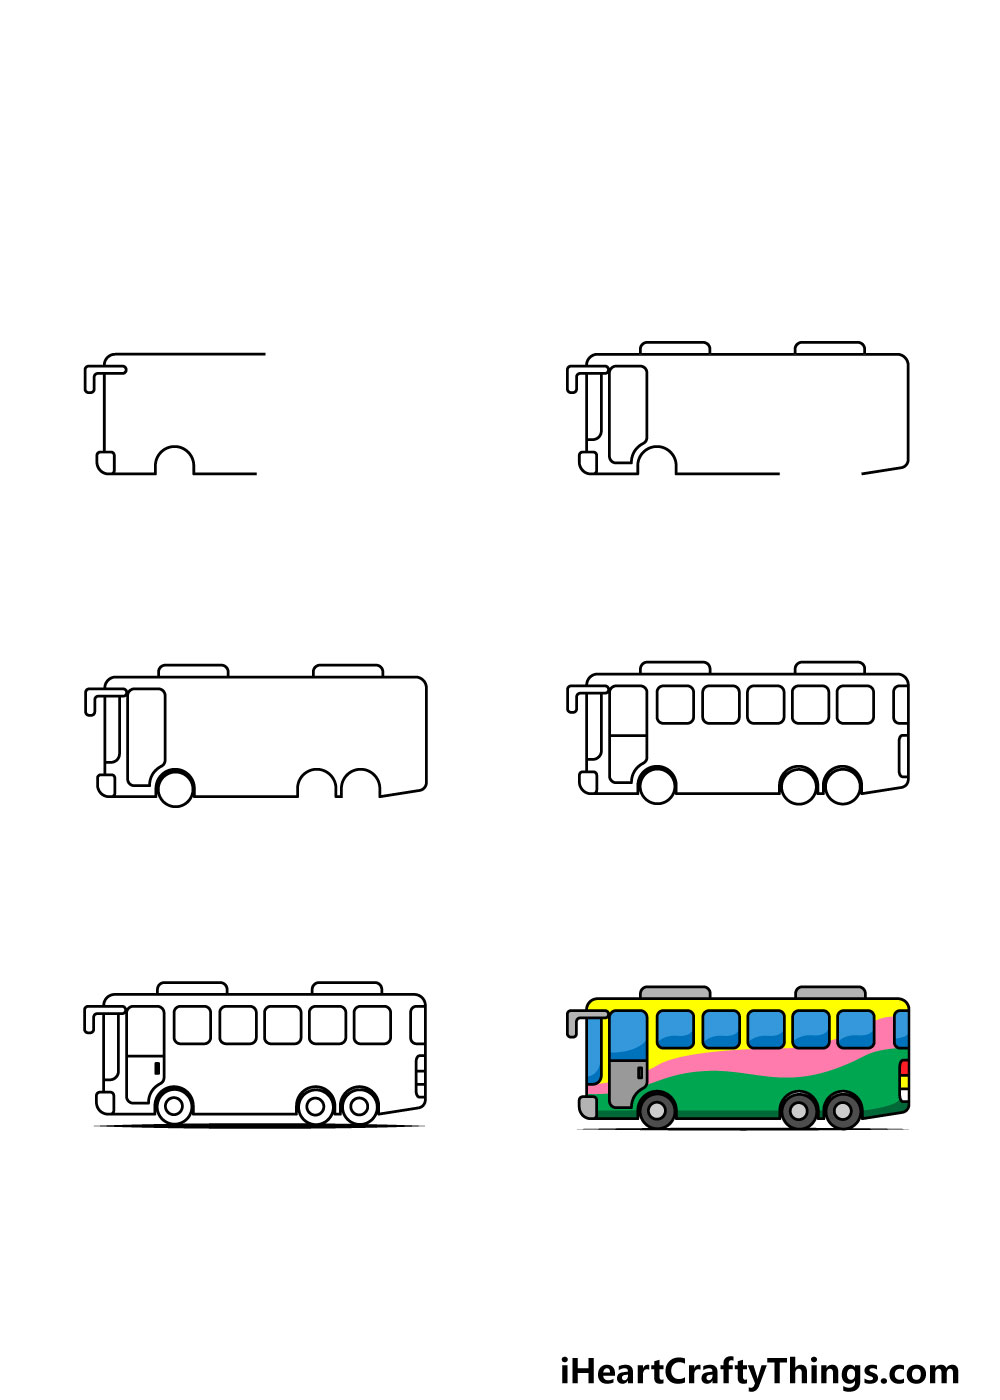 how to draw a bus in 6 steps